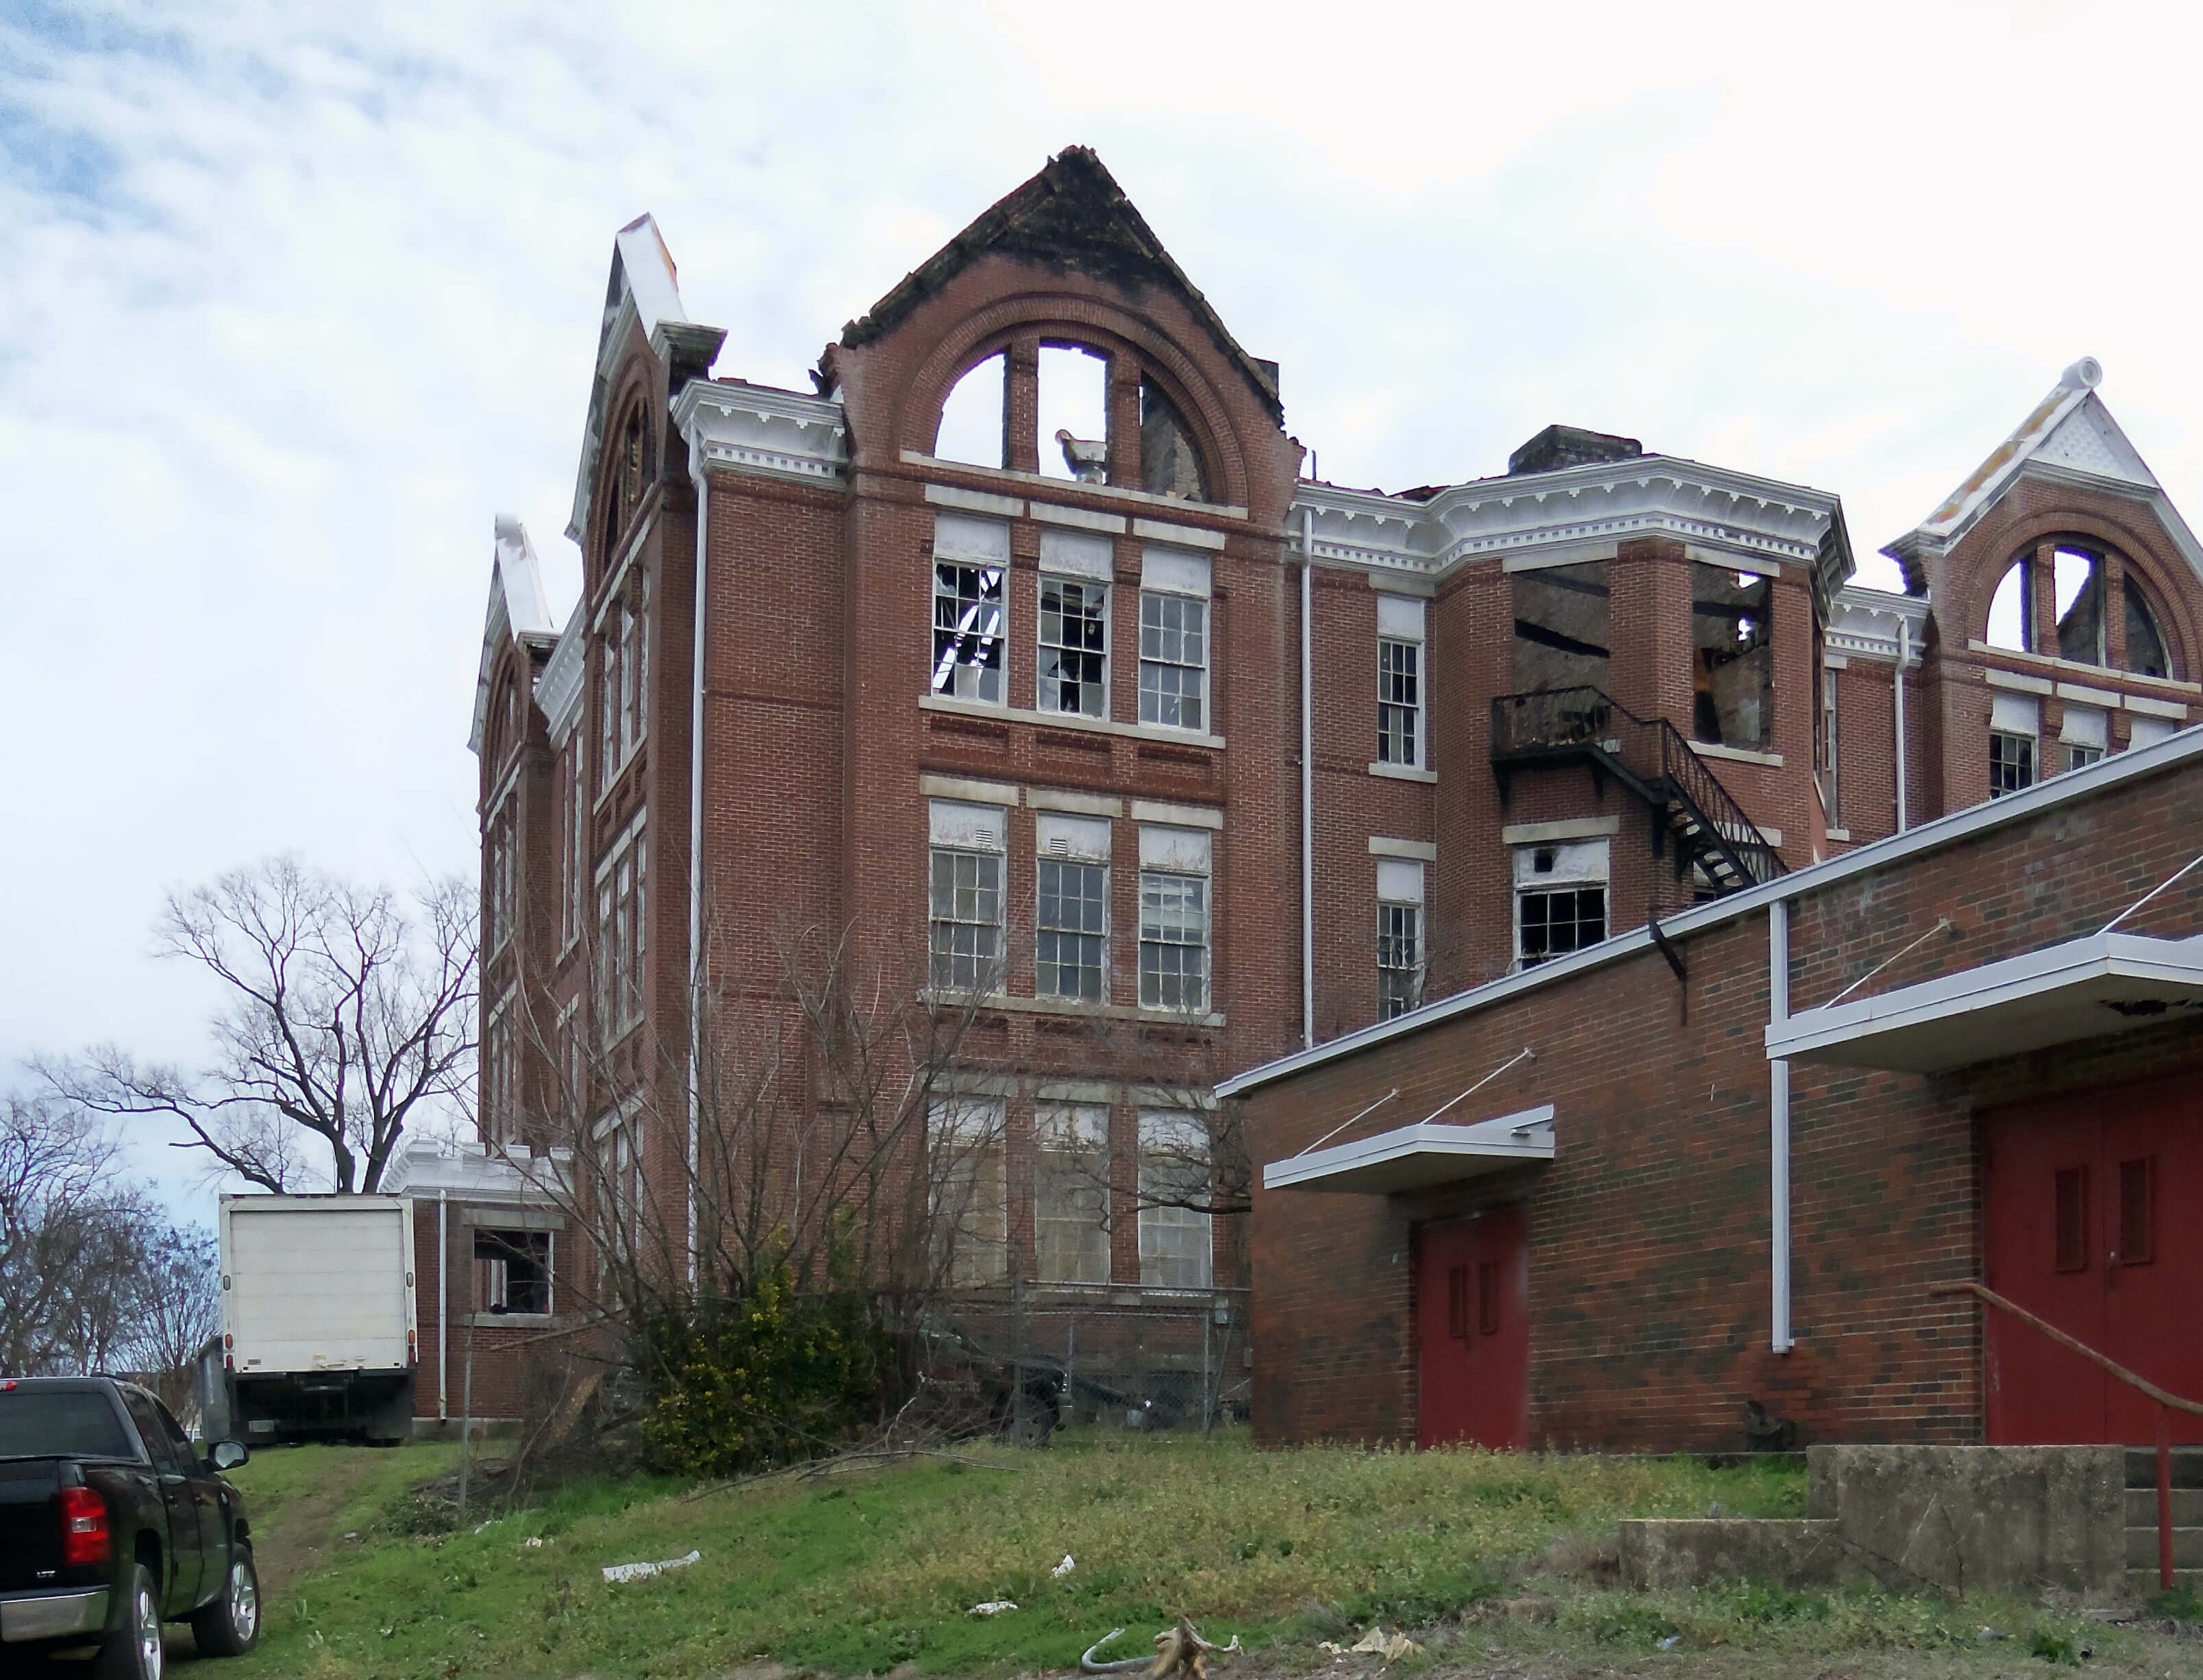 Image of Powell School post fire where One Stop Environmental performed debris removal.